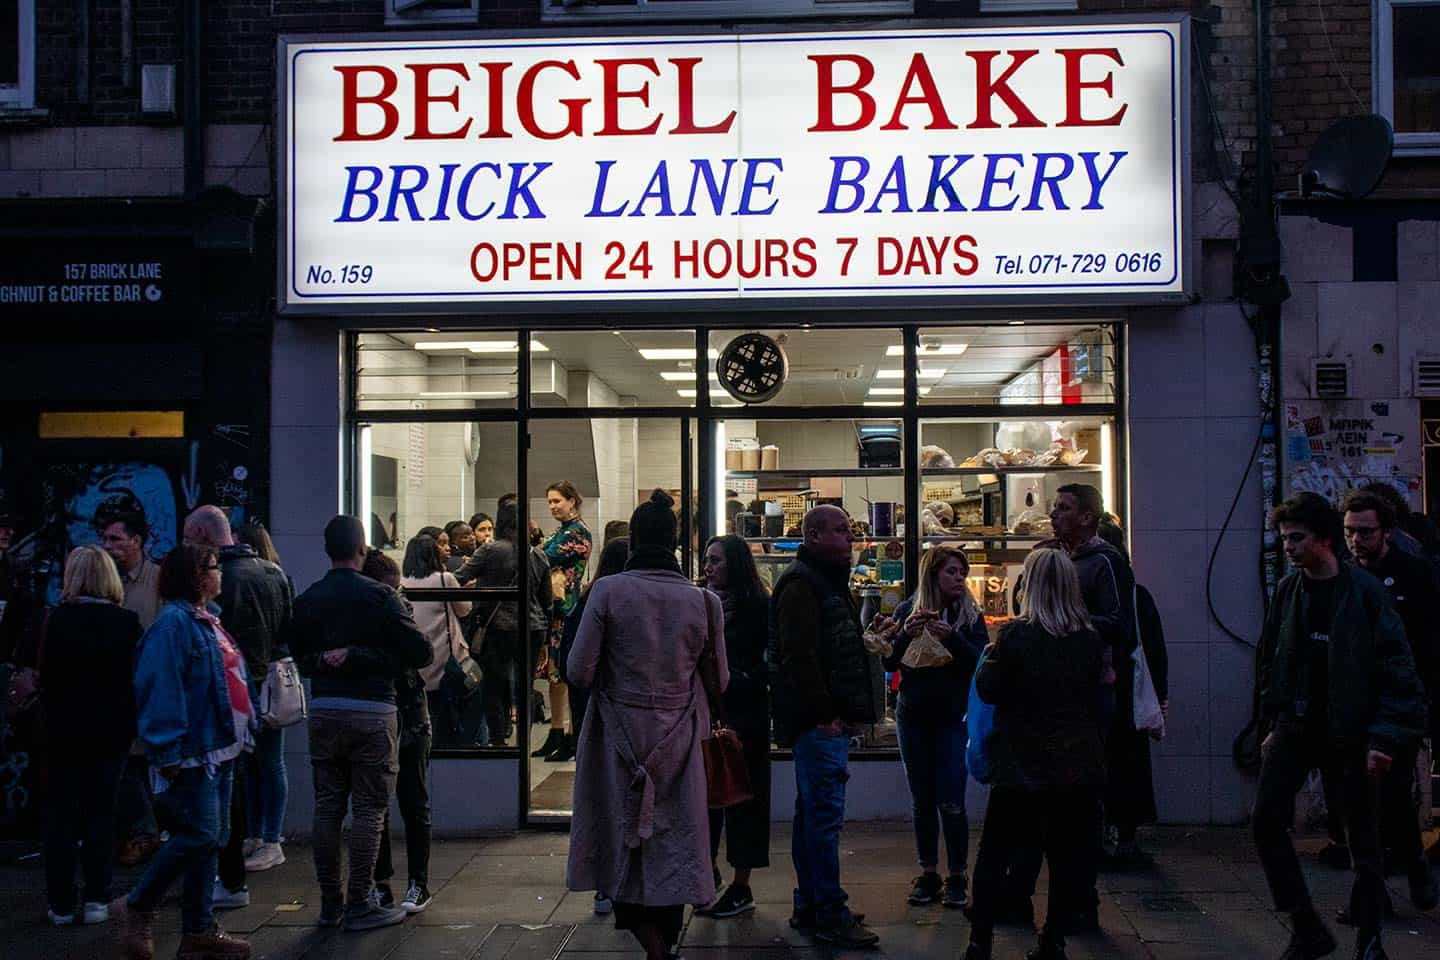 Image of the Brick Lane Beigel Bake shop in London